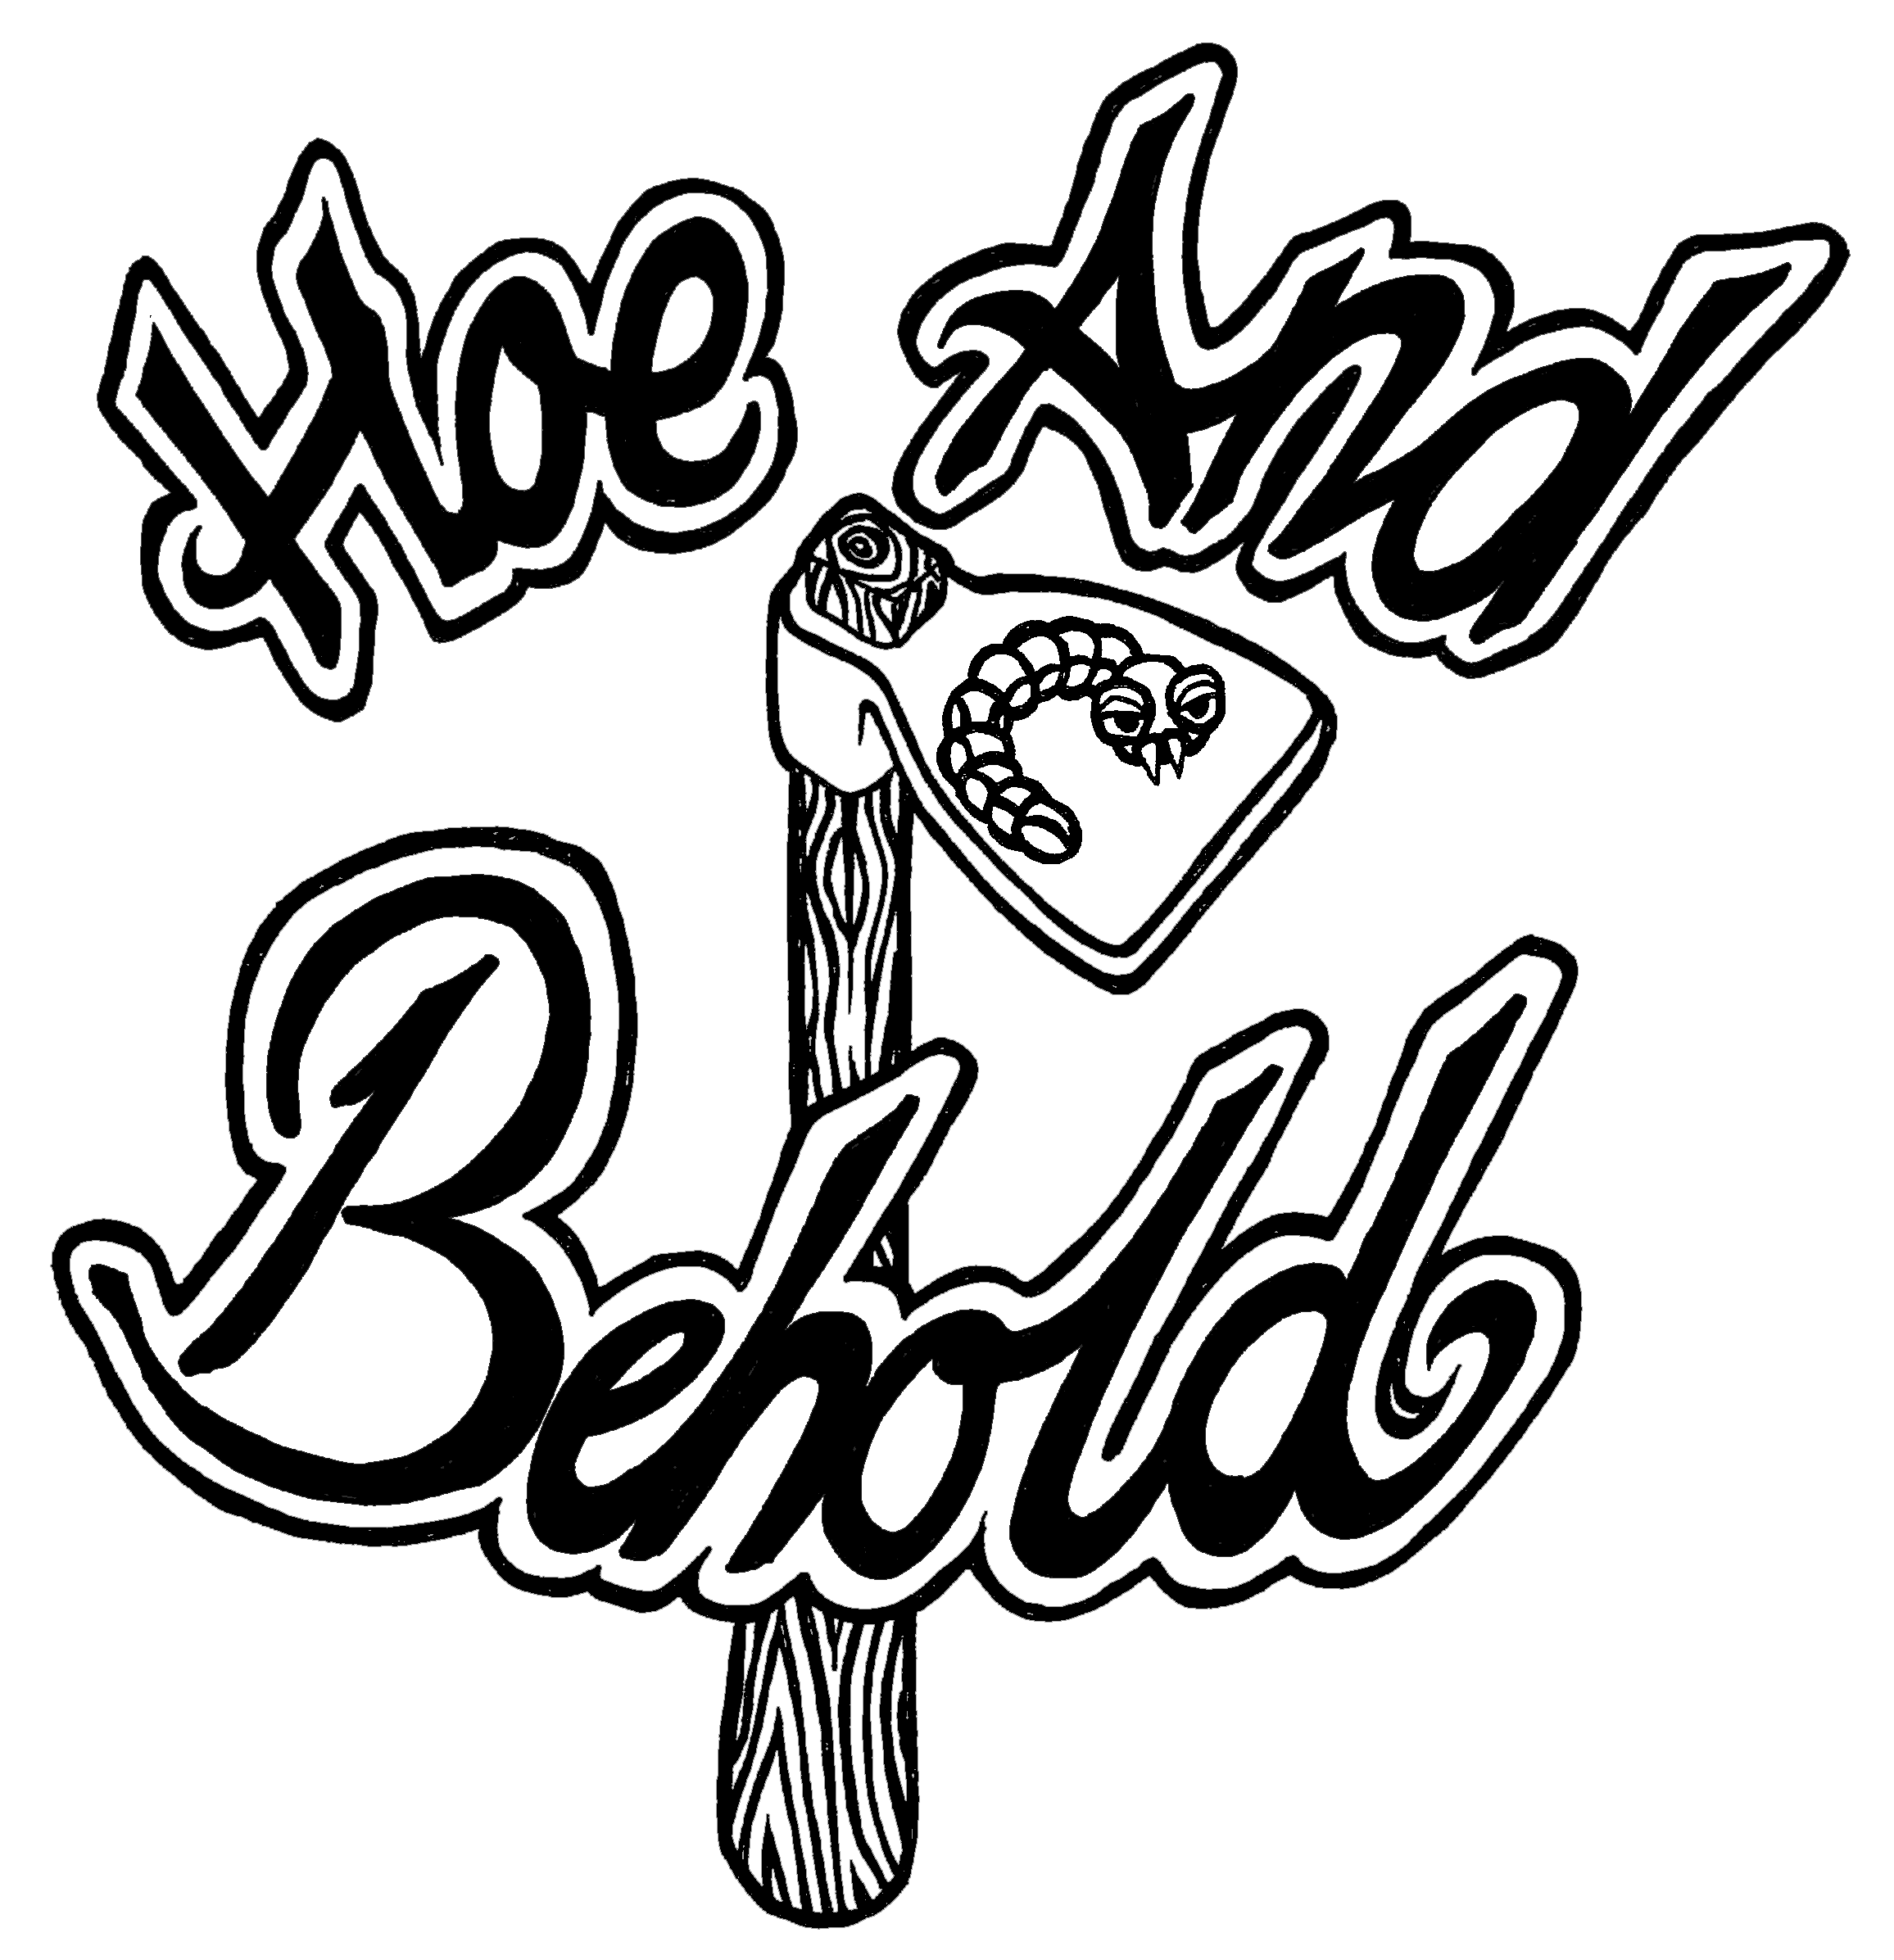 Hoe and Behold (2013)